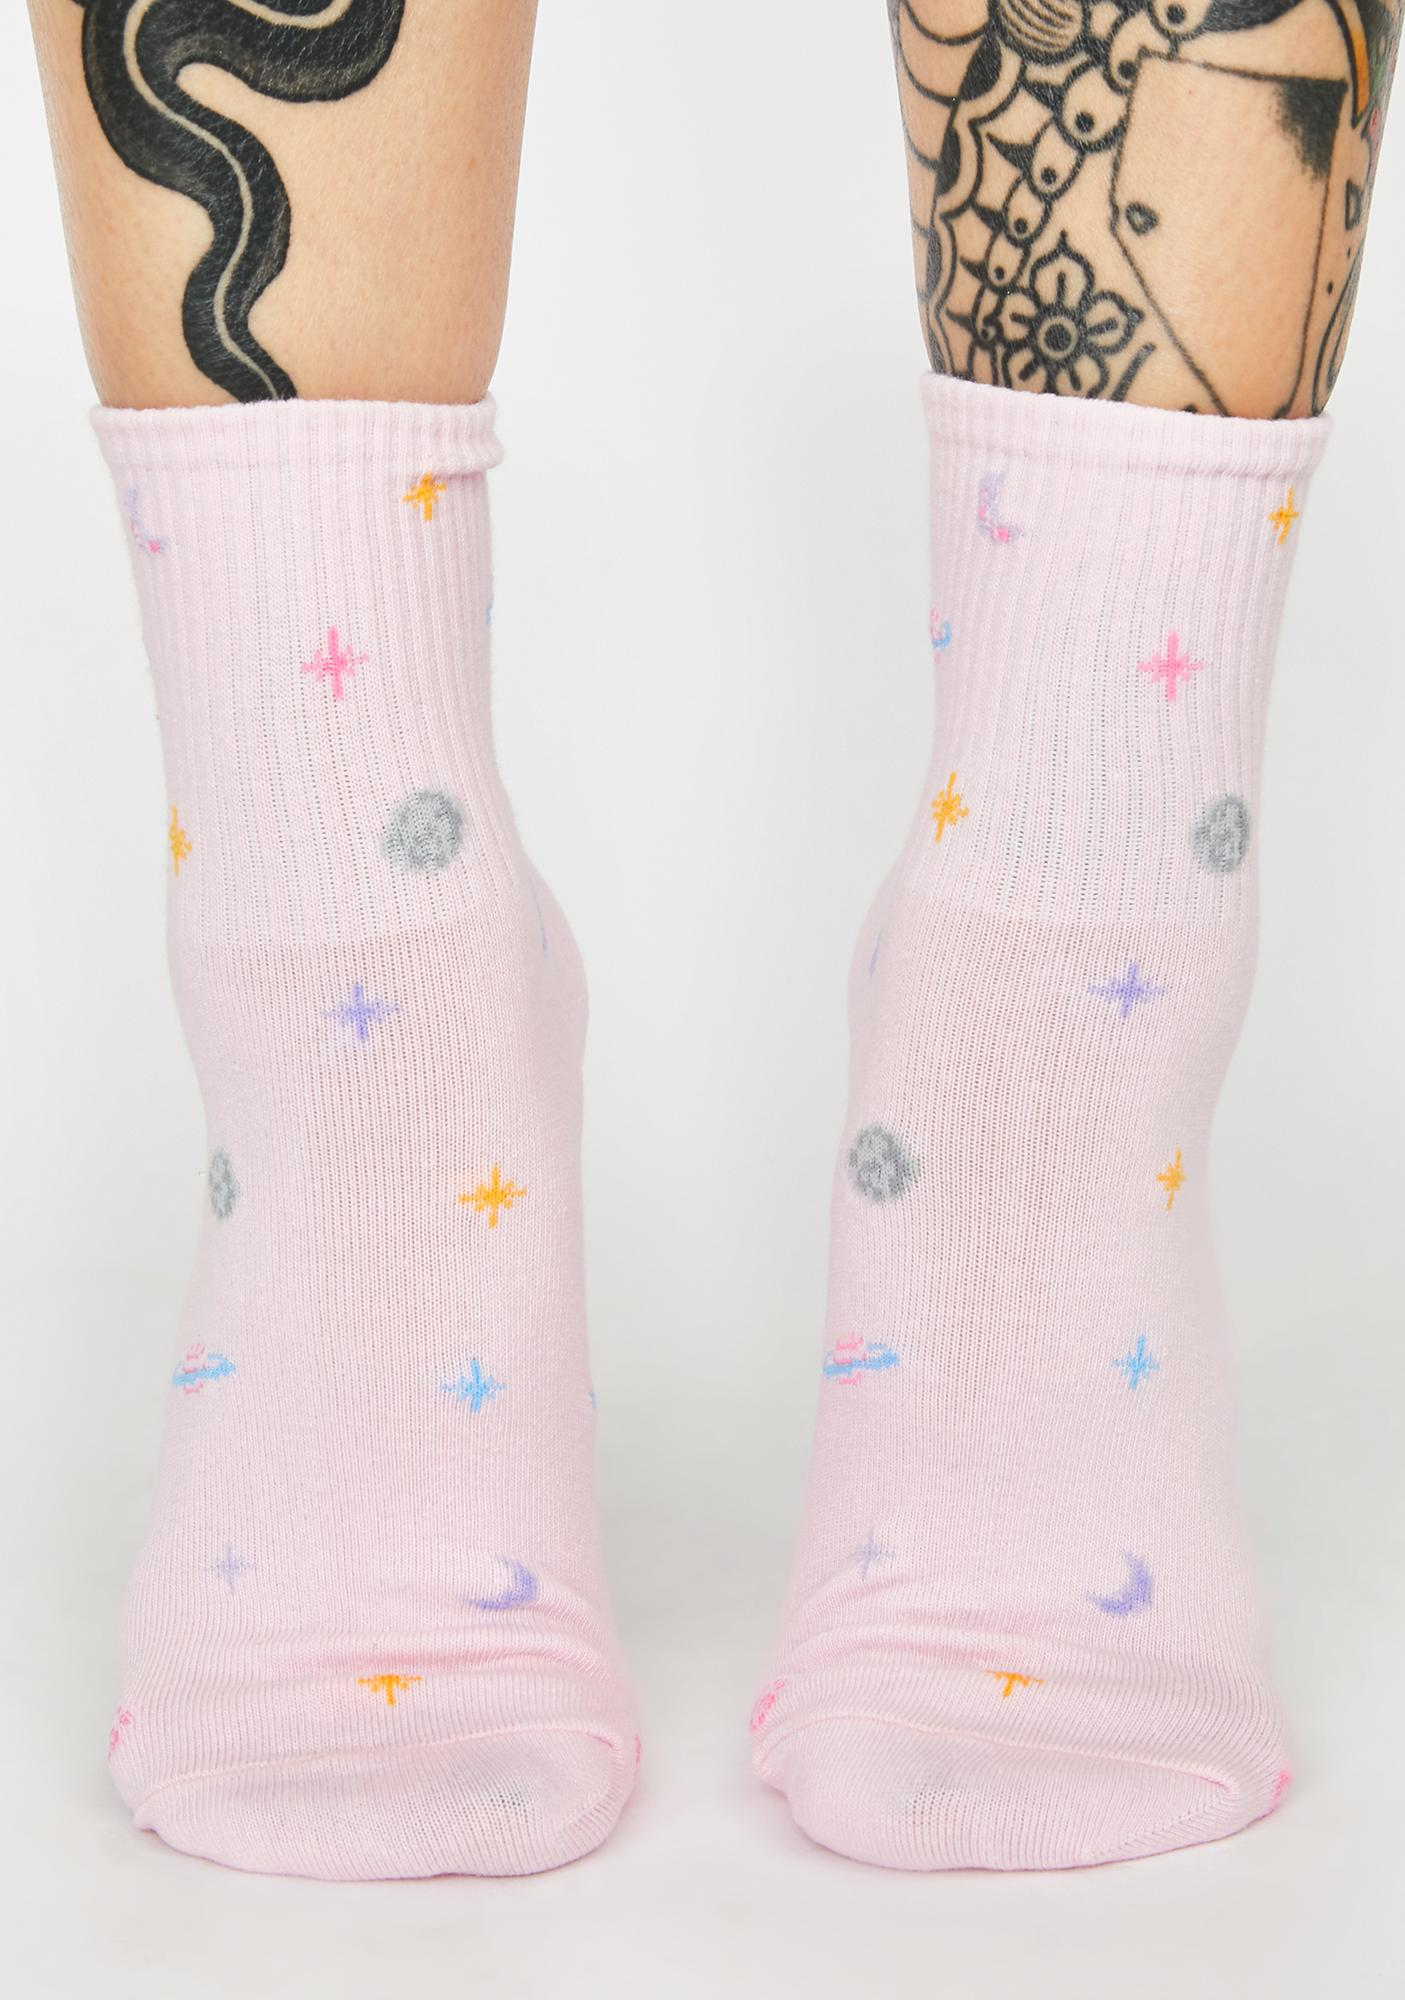 I Need Some Space Ankle Socks